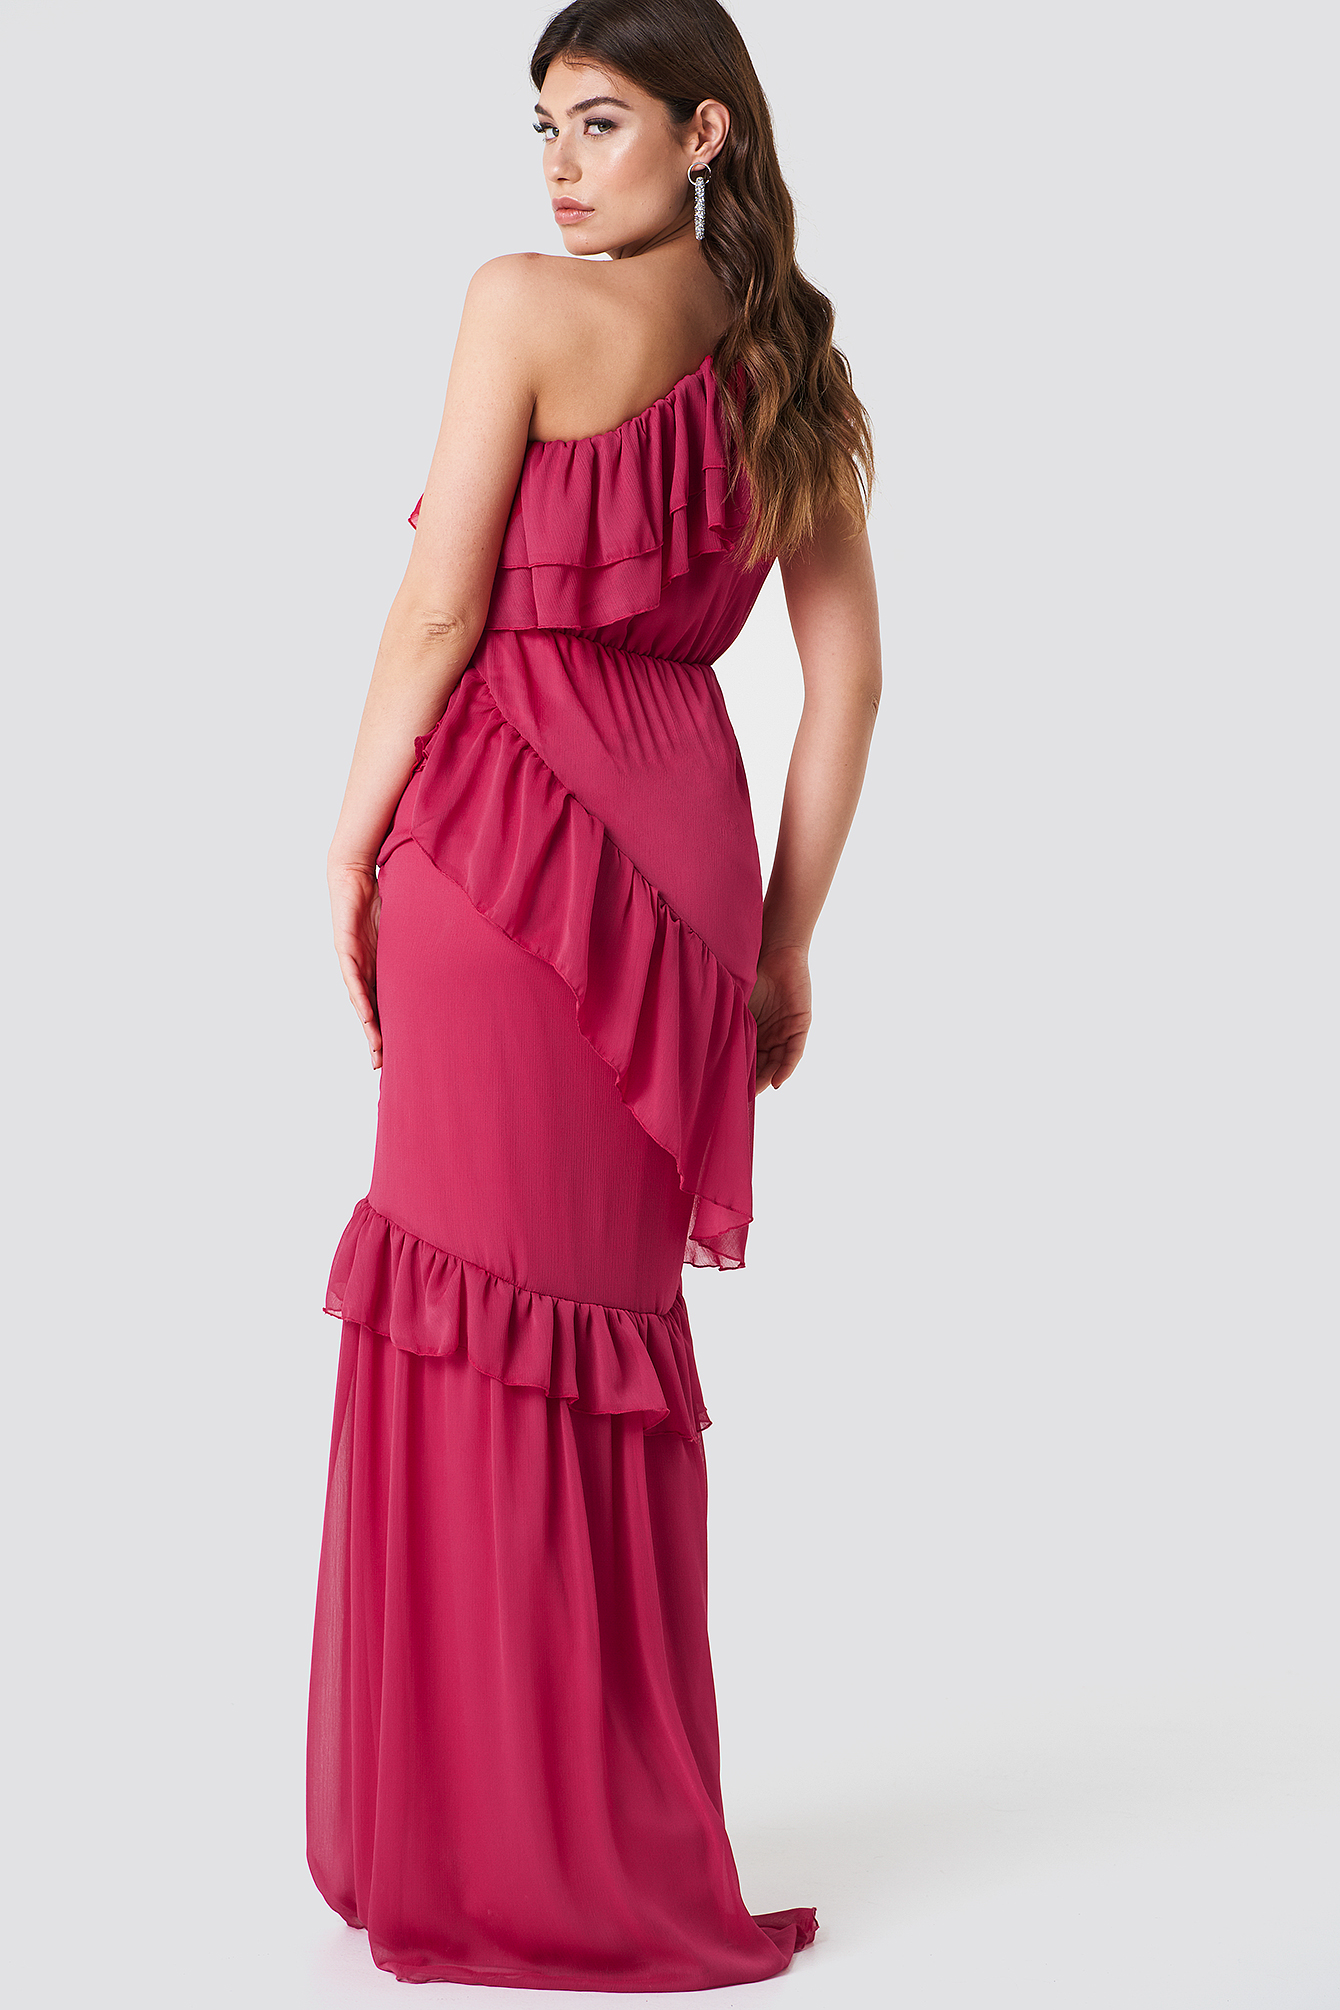 One Shoulder Maxi Dress Fuchsia Na Kd Com